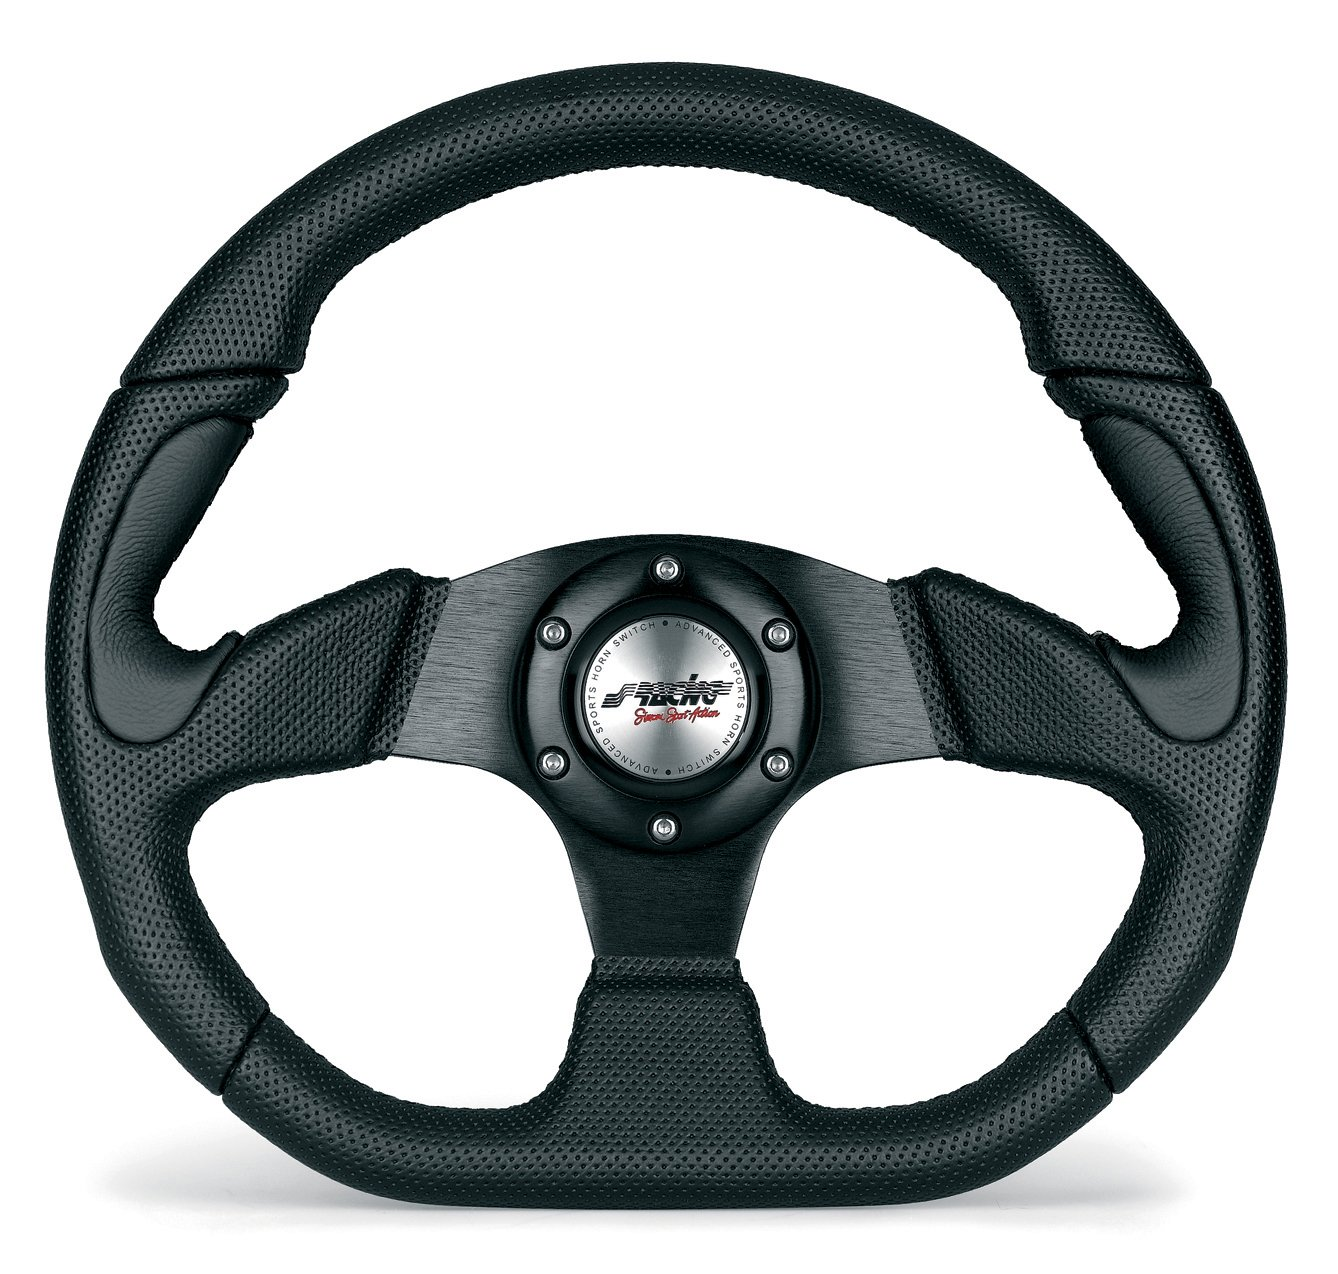 Simoni Racing X2330PUN/P Universal Steering Wheel, Black